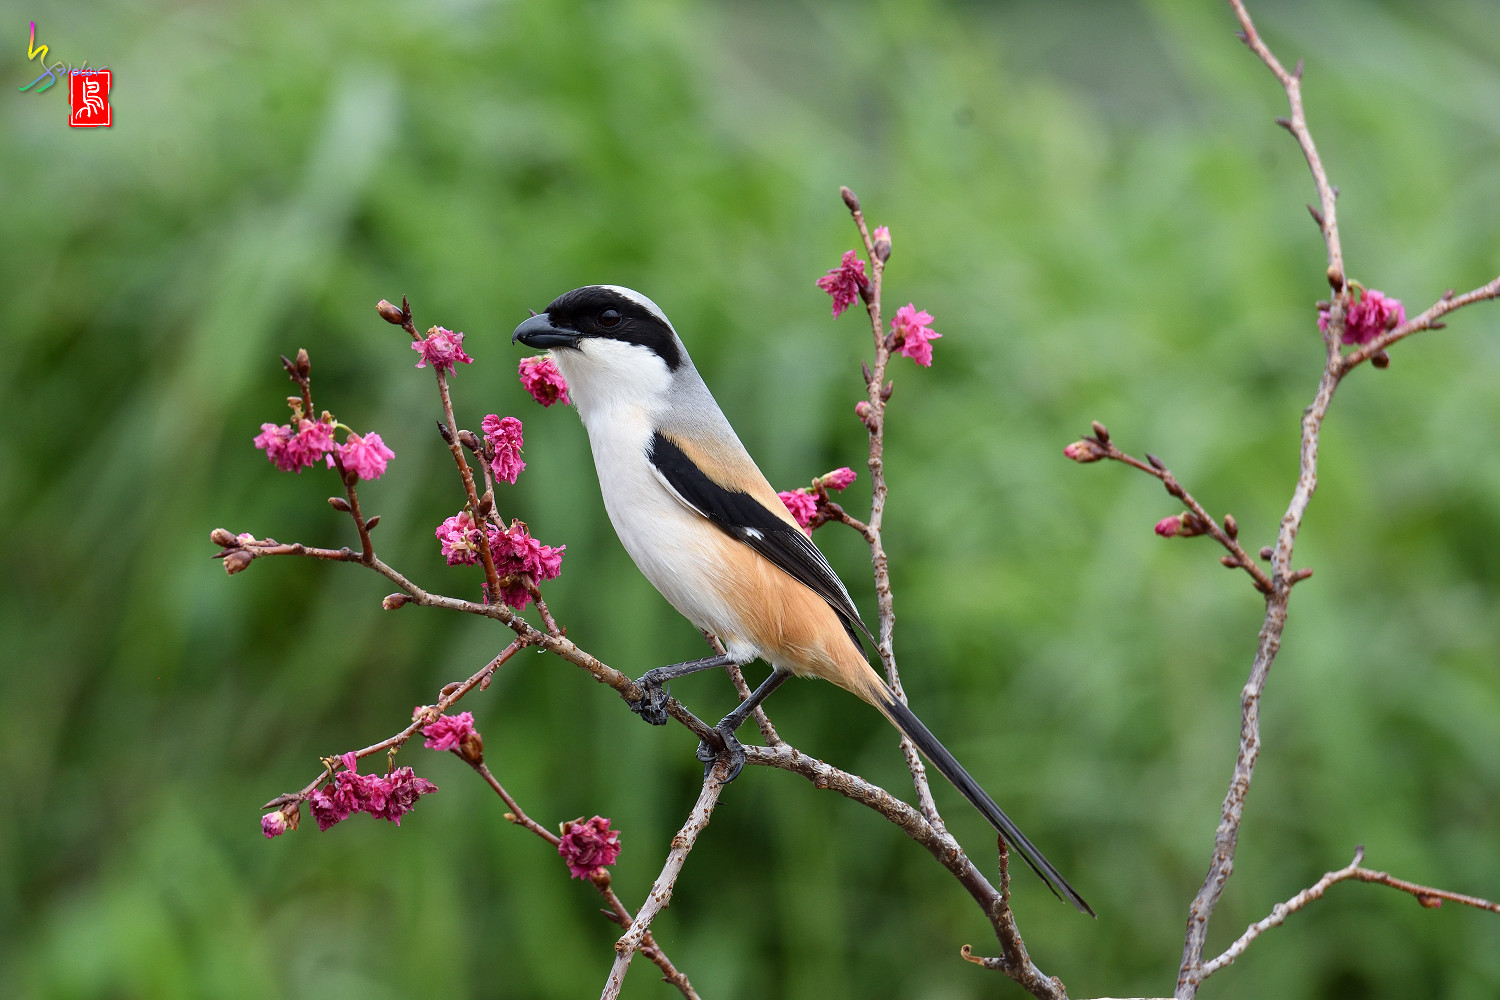 Long-tailed_Shrike_5559